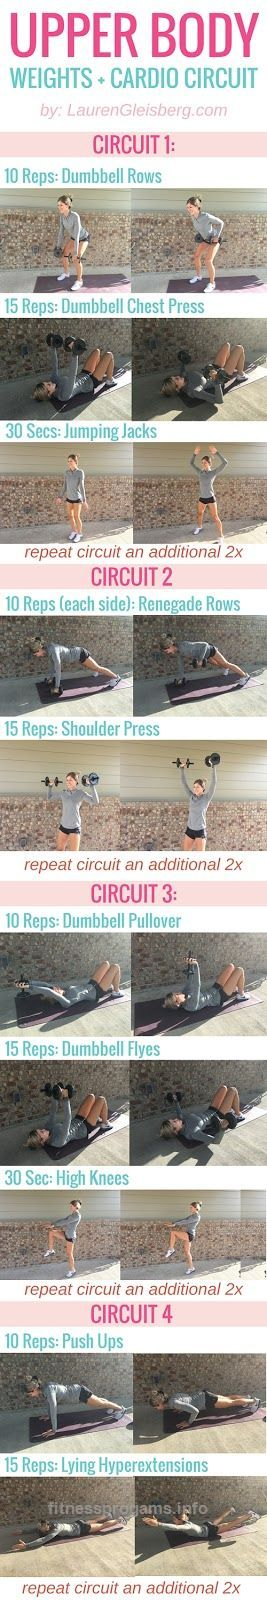 Fitabulous Fall Fitness Calendar: Upper Body Circuit – 10/22 | Lauren Gleisberg | Happiness, Health, & Fitness UPPER BODY WEIGHT TRAINING & CARDIO CIRCULE | click for full workout programs http://www.fitnessprogams.info/2017/06/10/fitabulous-fall-fitness-calendar-upper-body-circuit-1022-lauren-gleisberg-happiness-health-fitness/